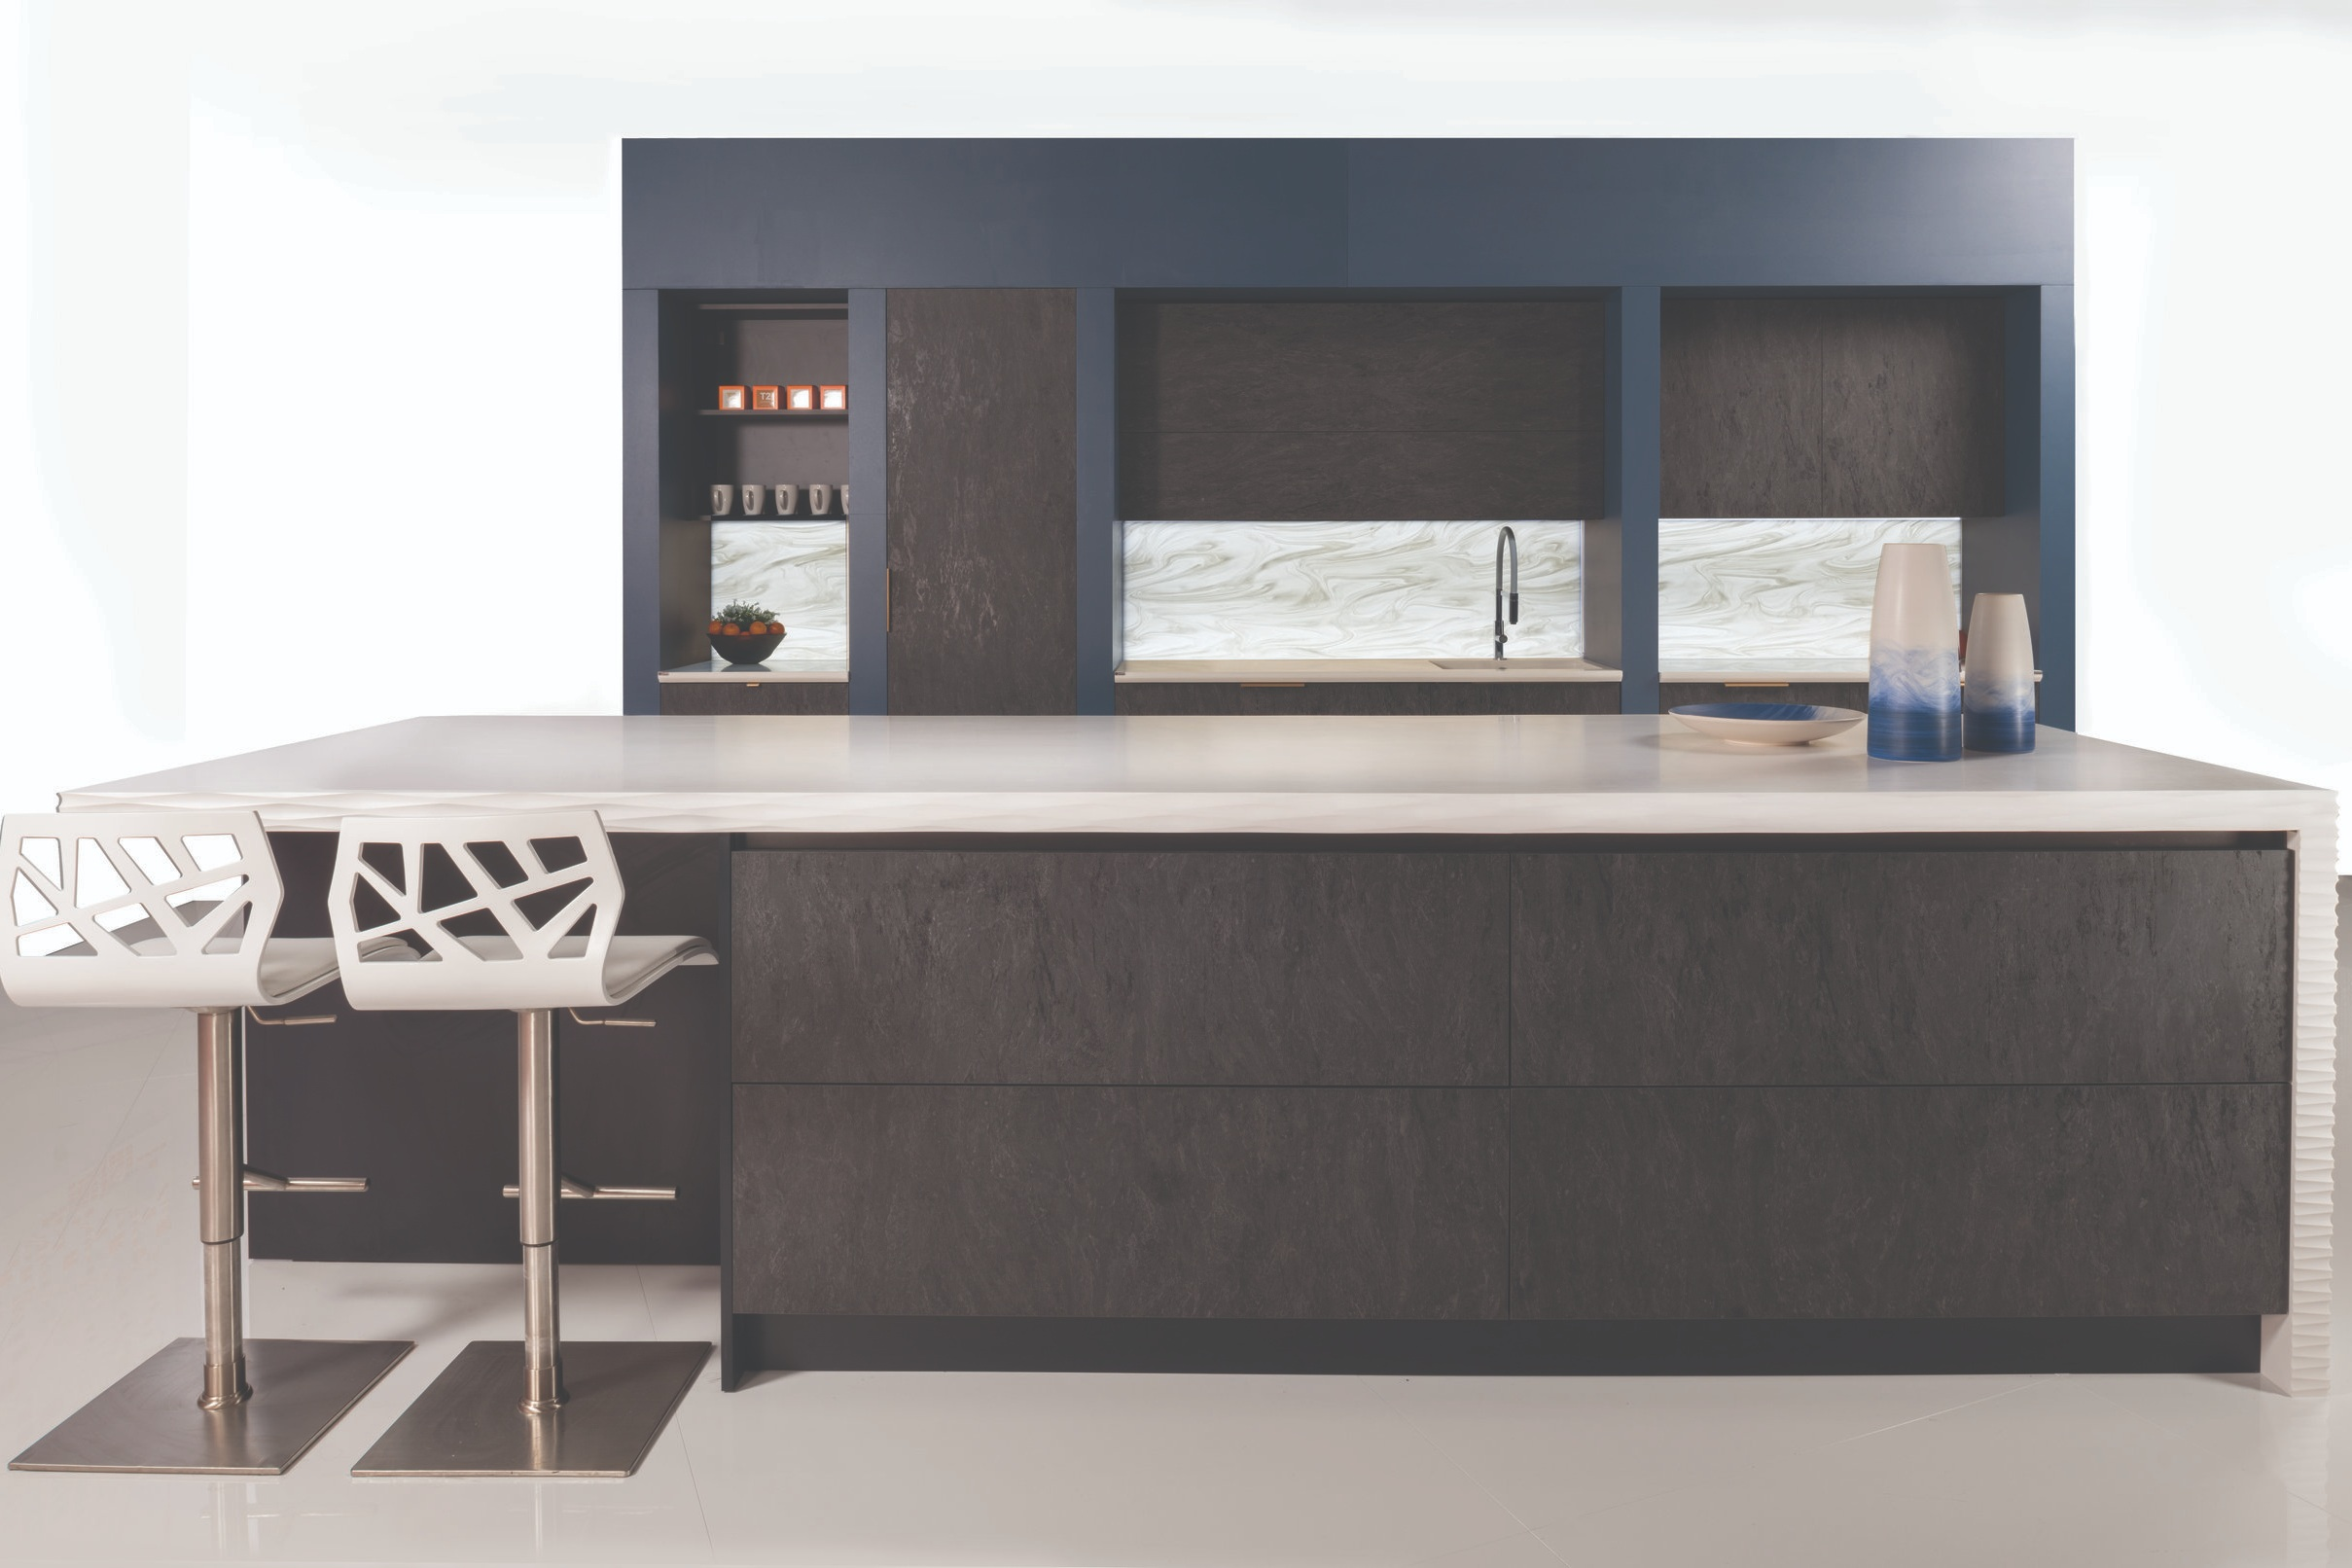 Corian+kitchen+1.jpg